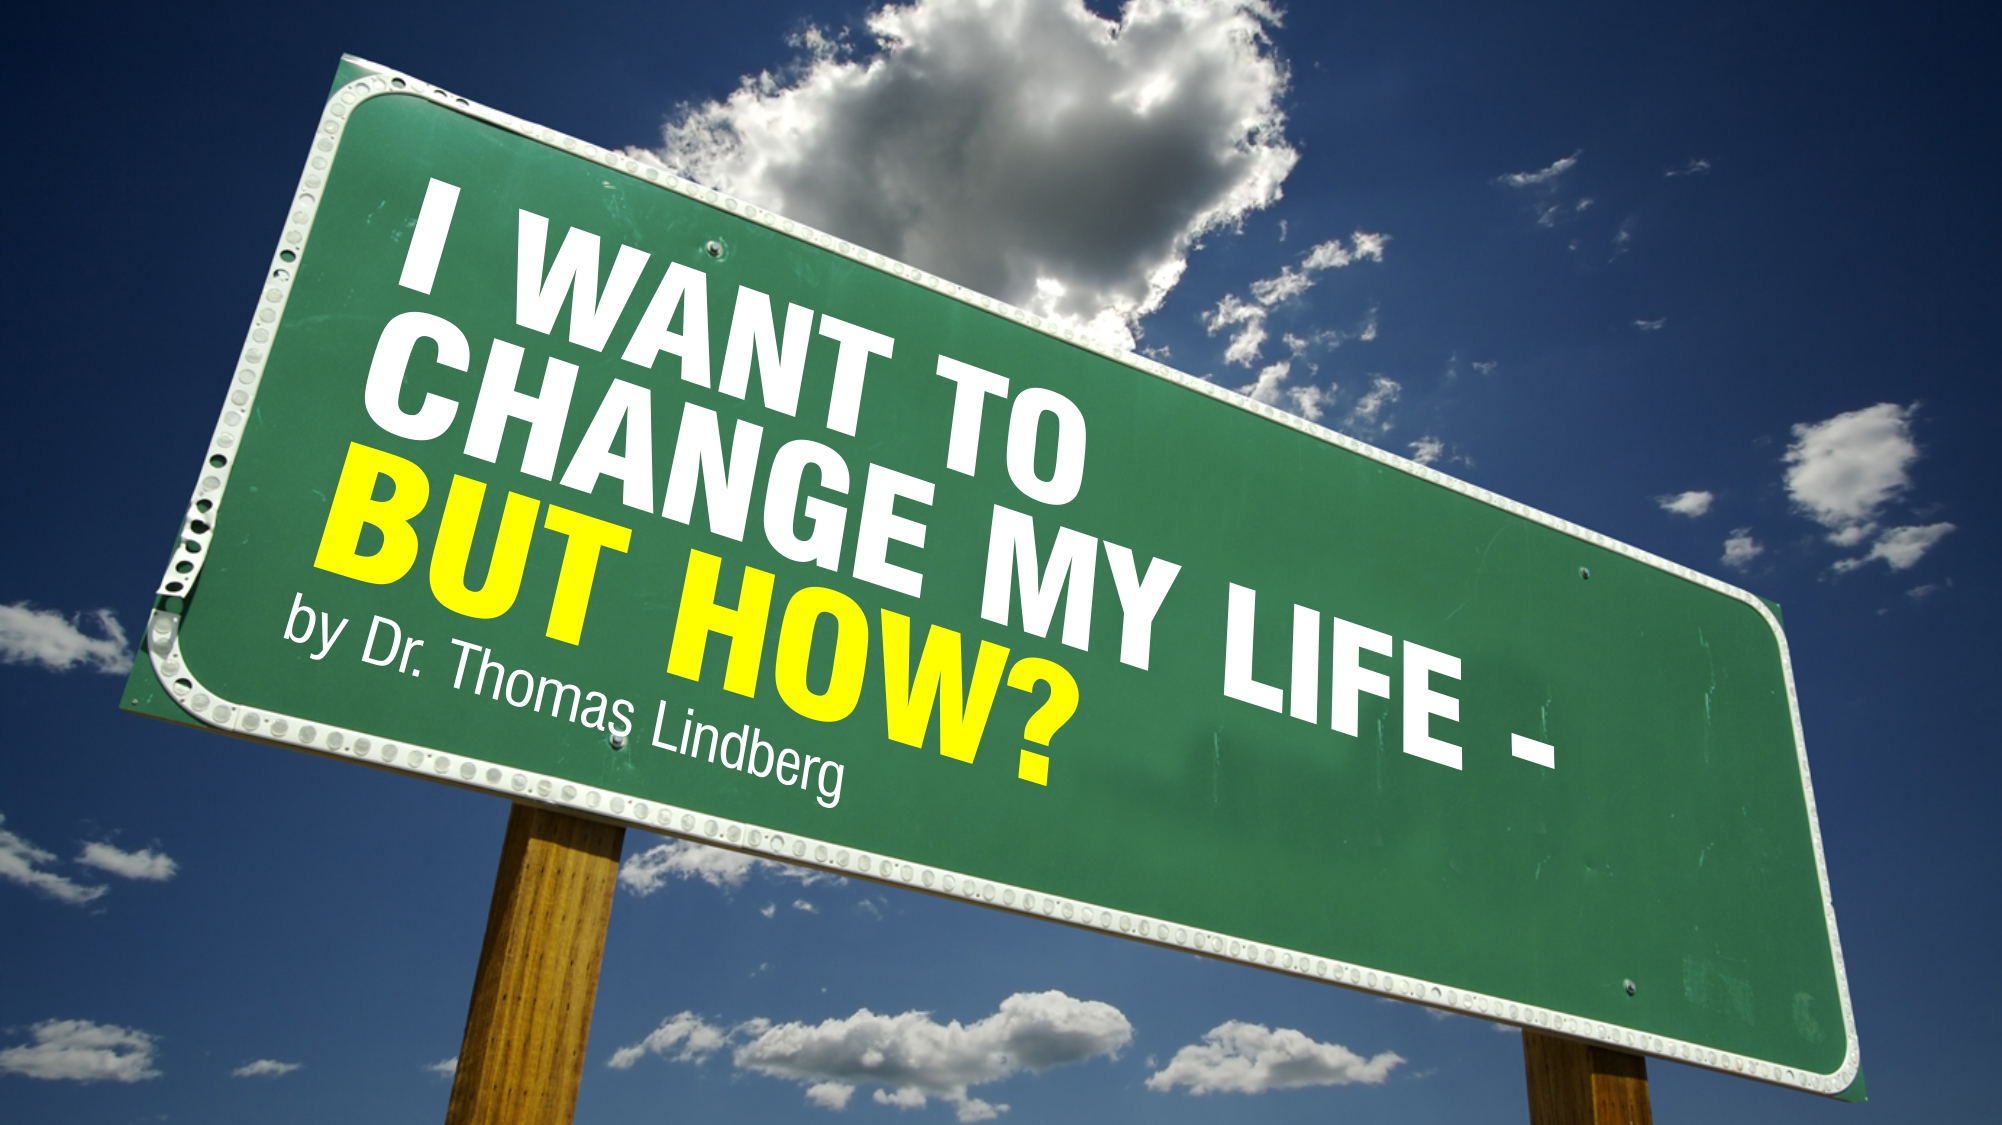 i-want-to-change-my-life